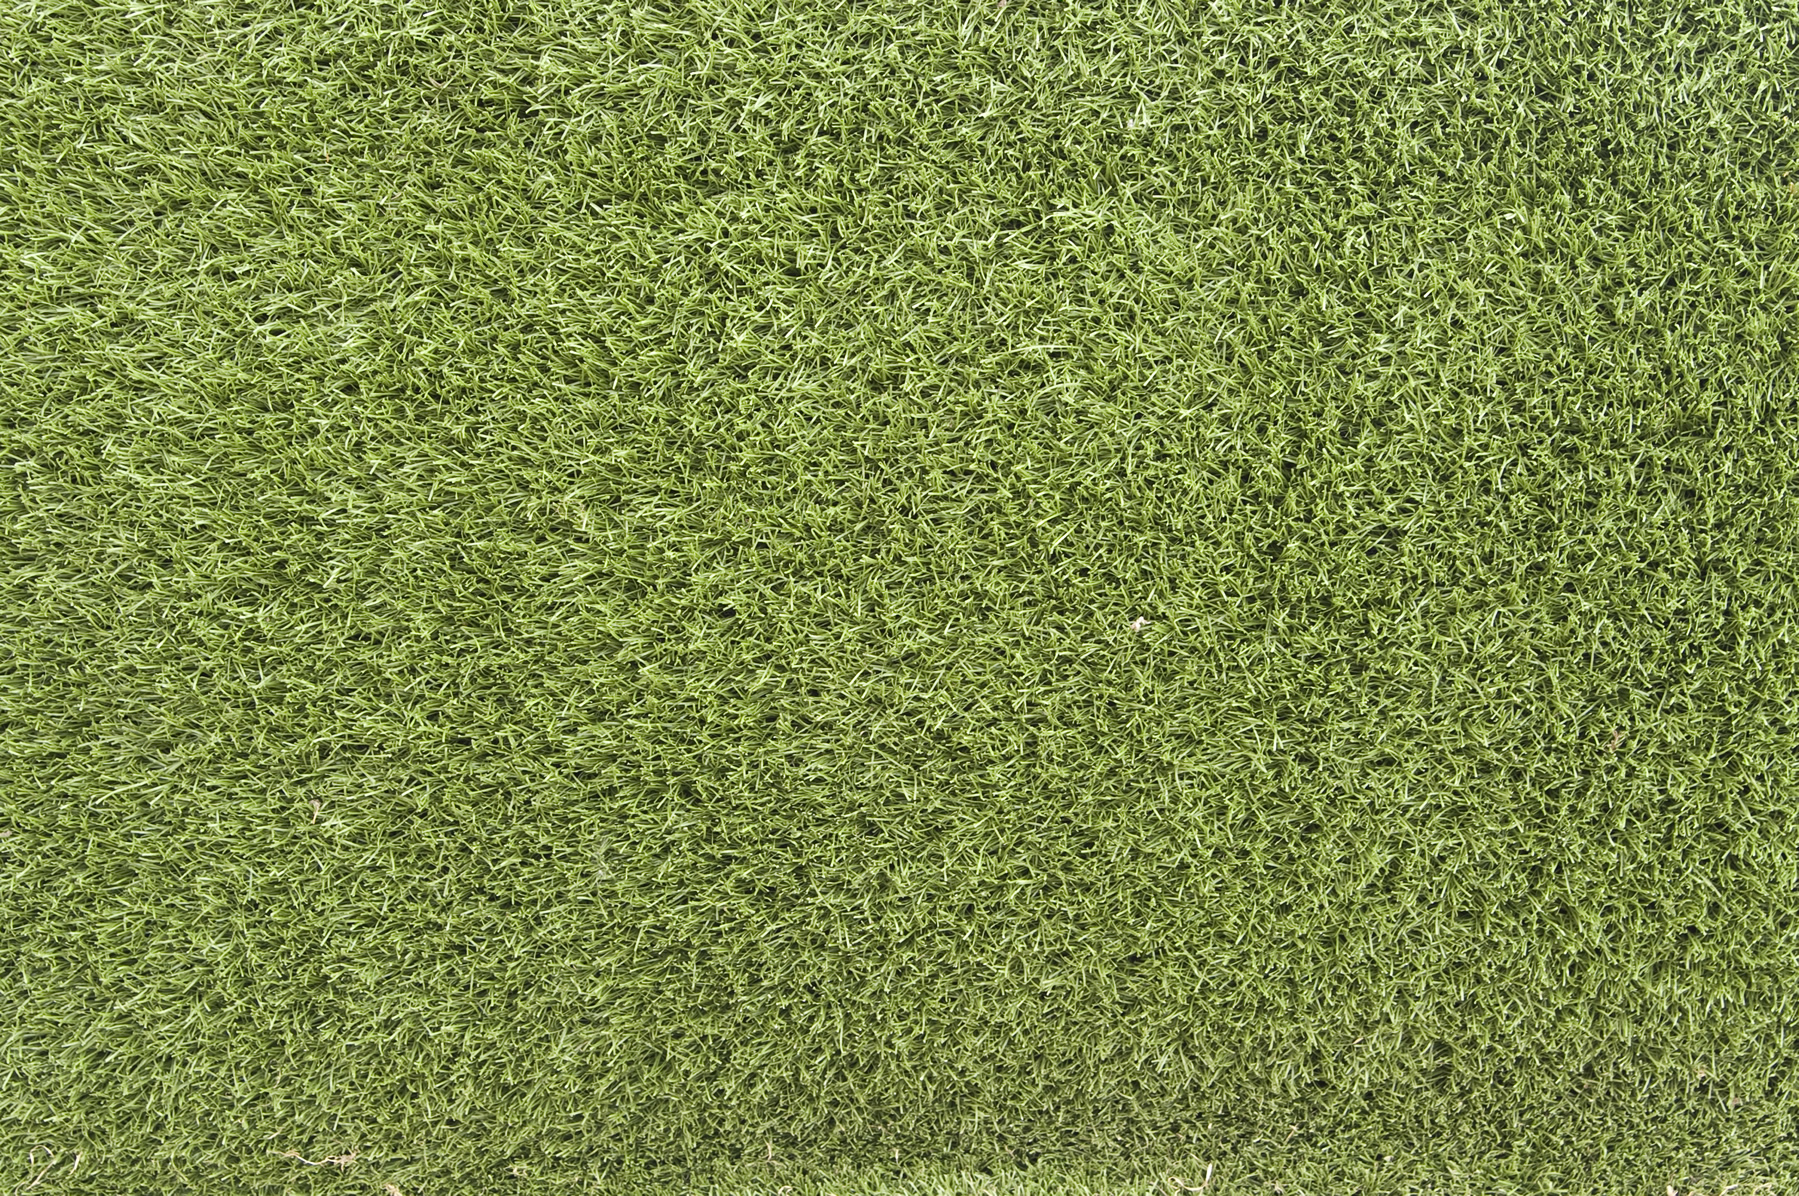 grass background texture - photo #17